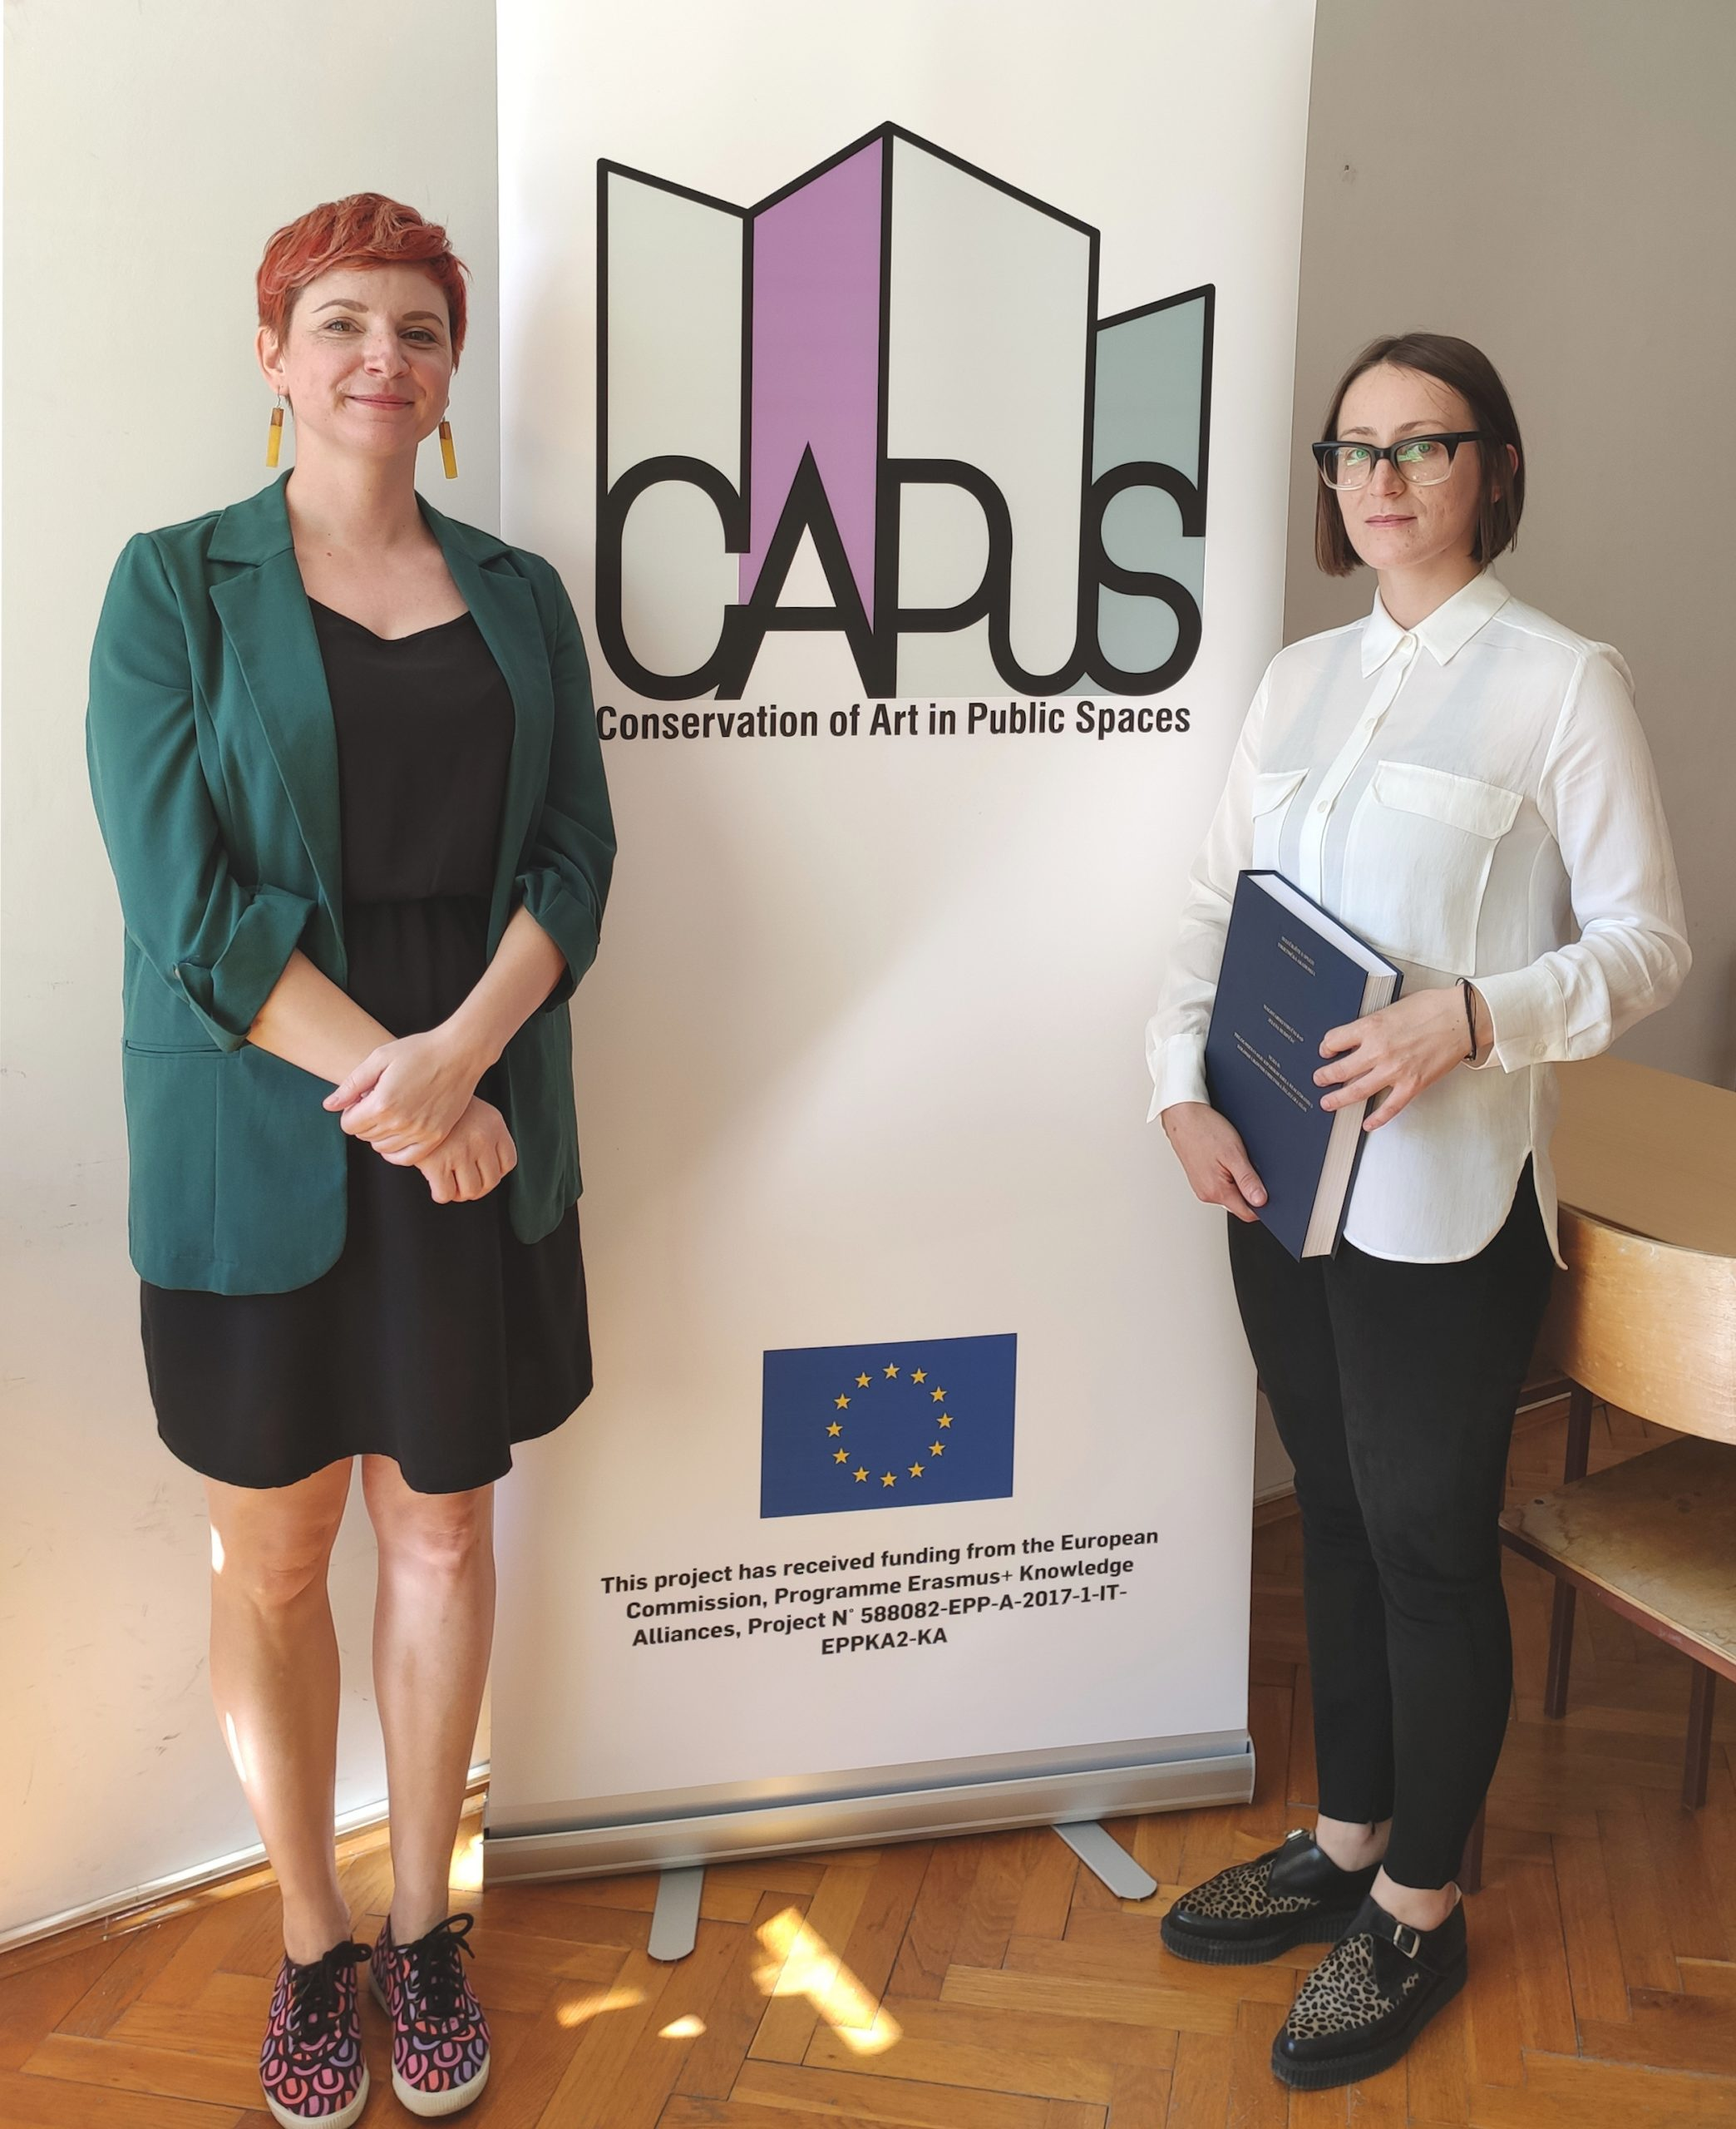 Jelena Hudinčec (University of Split – Arts Academy) defends MA theses related to the CAPuS project